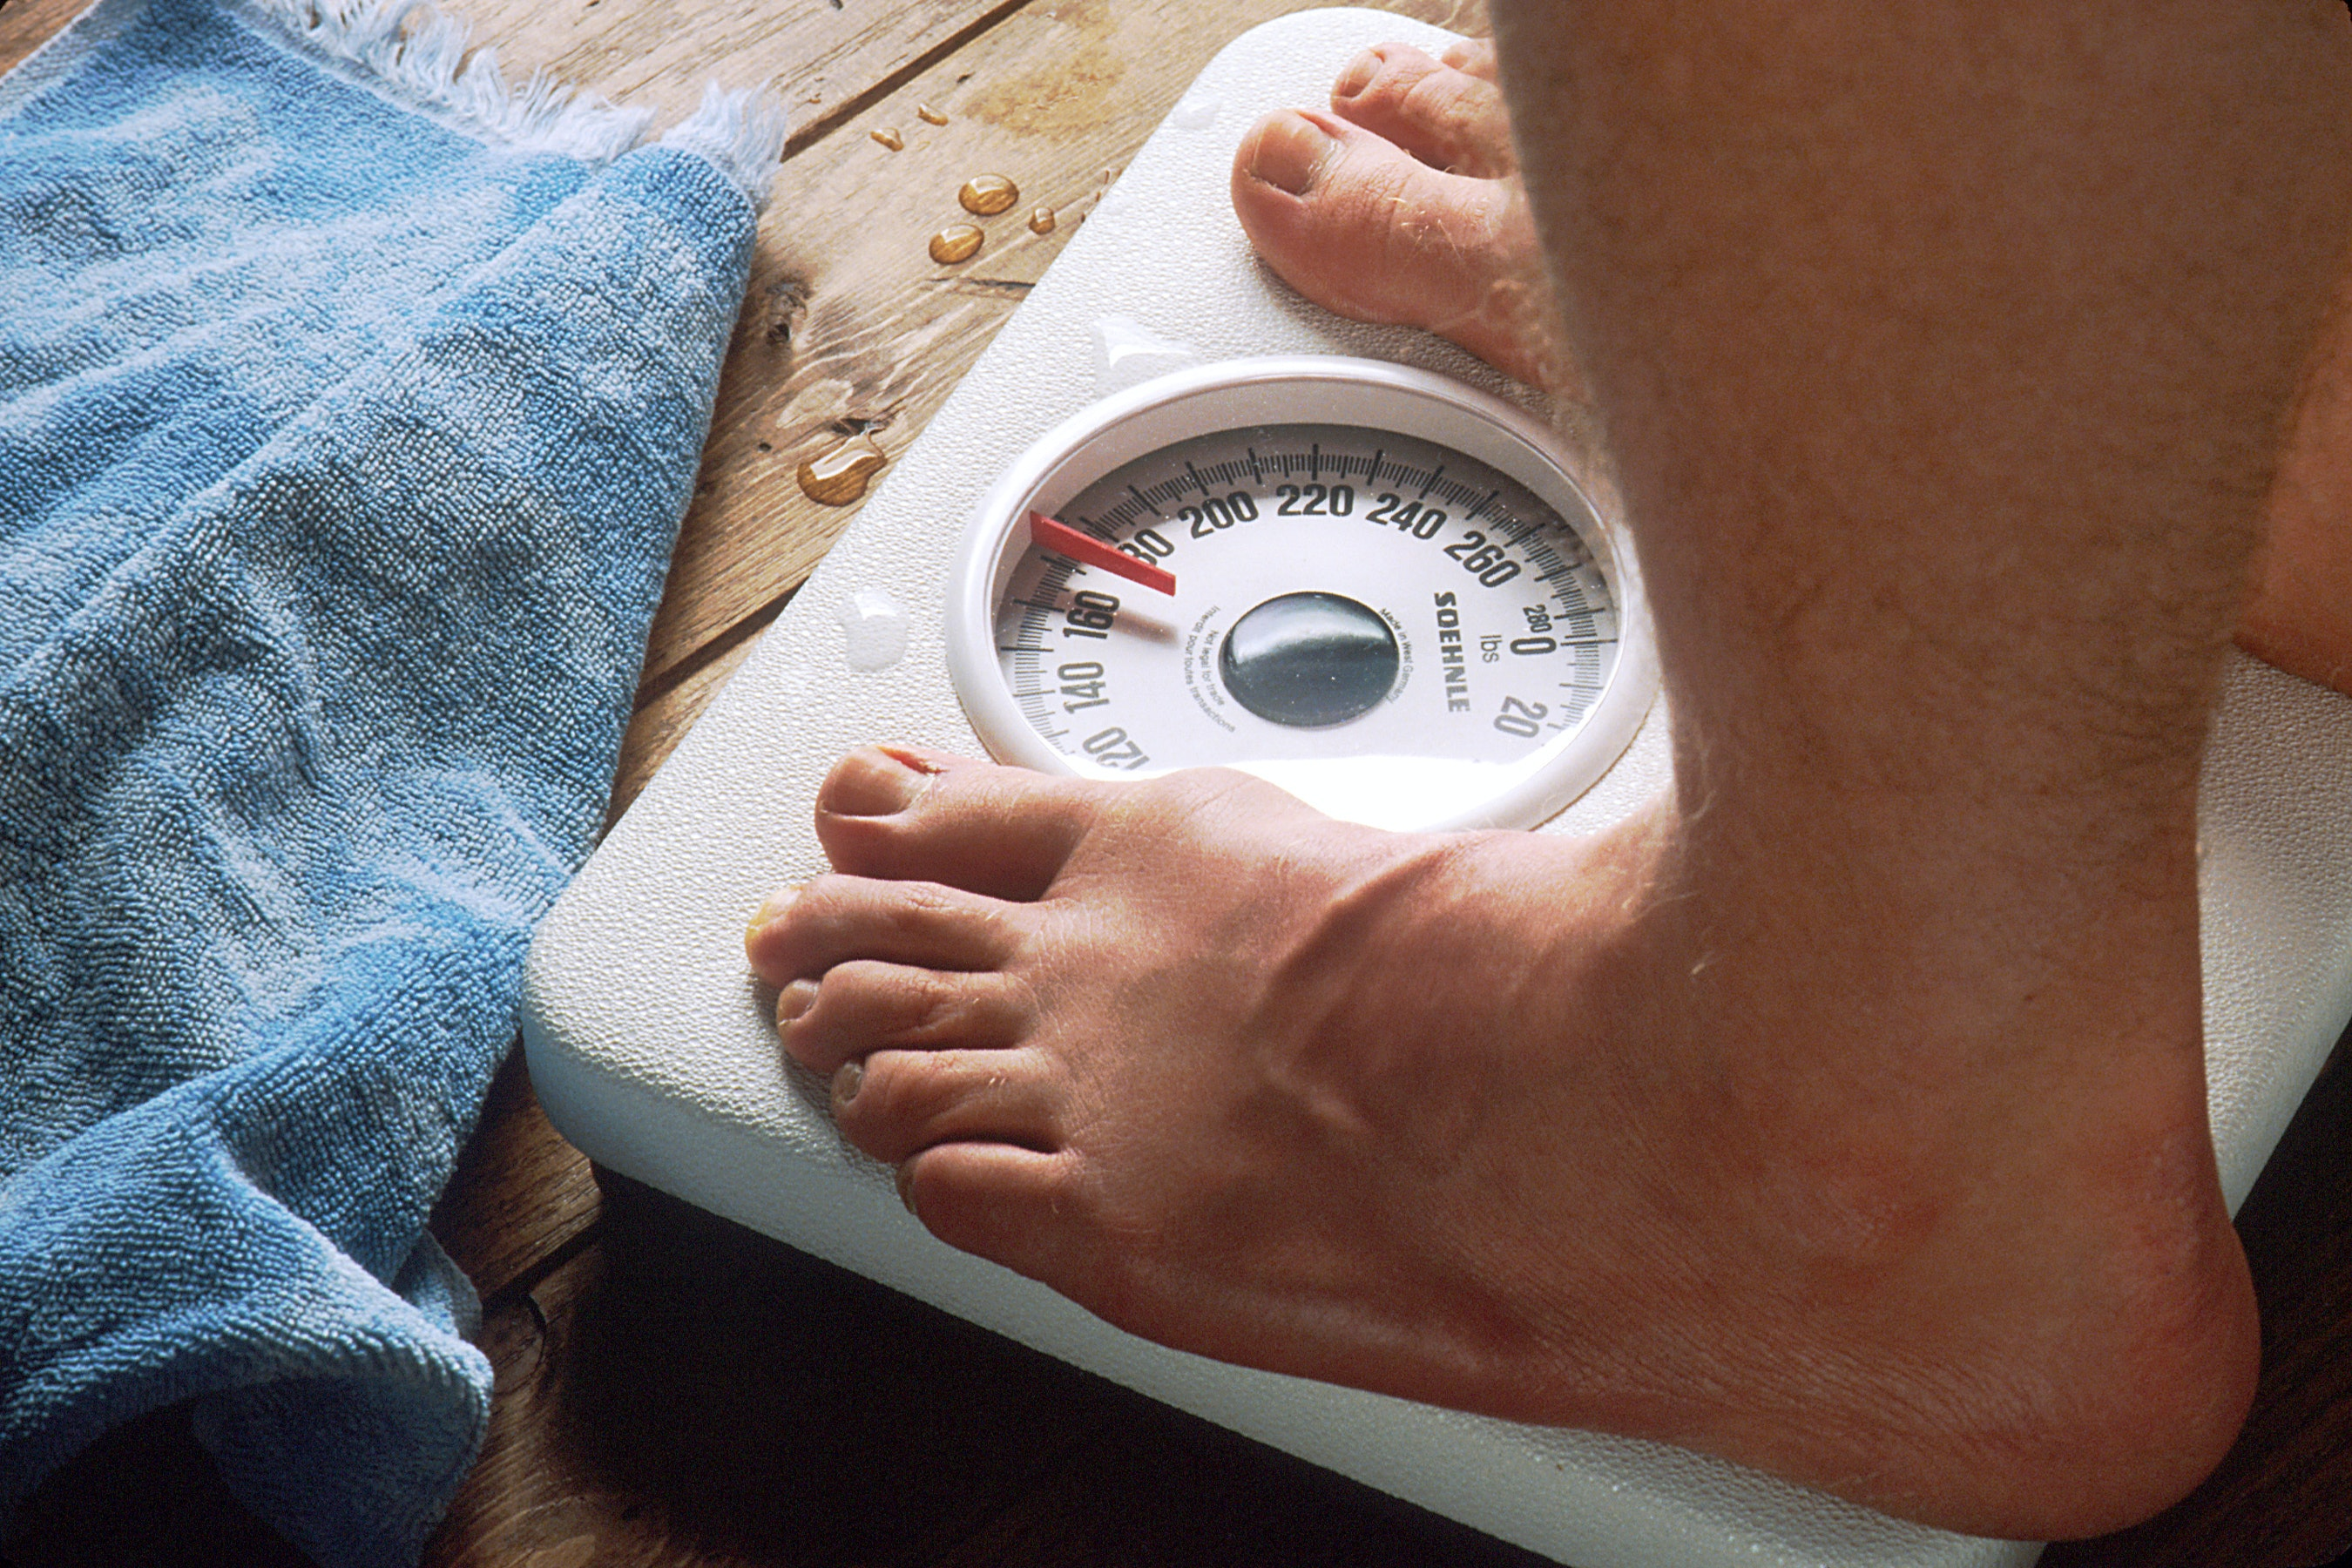 Men have eating disorders too – and often can't talk about them